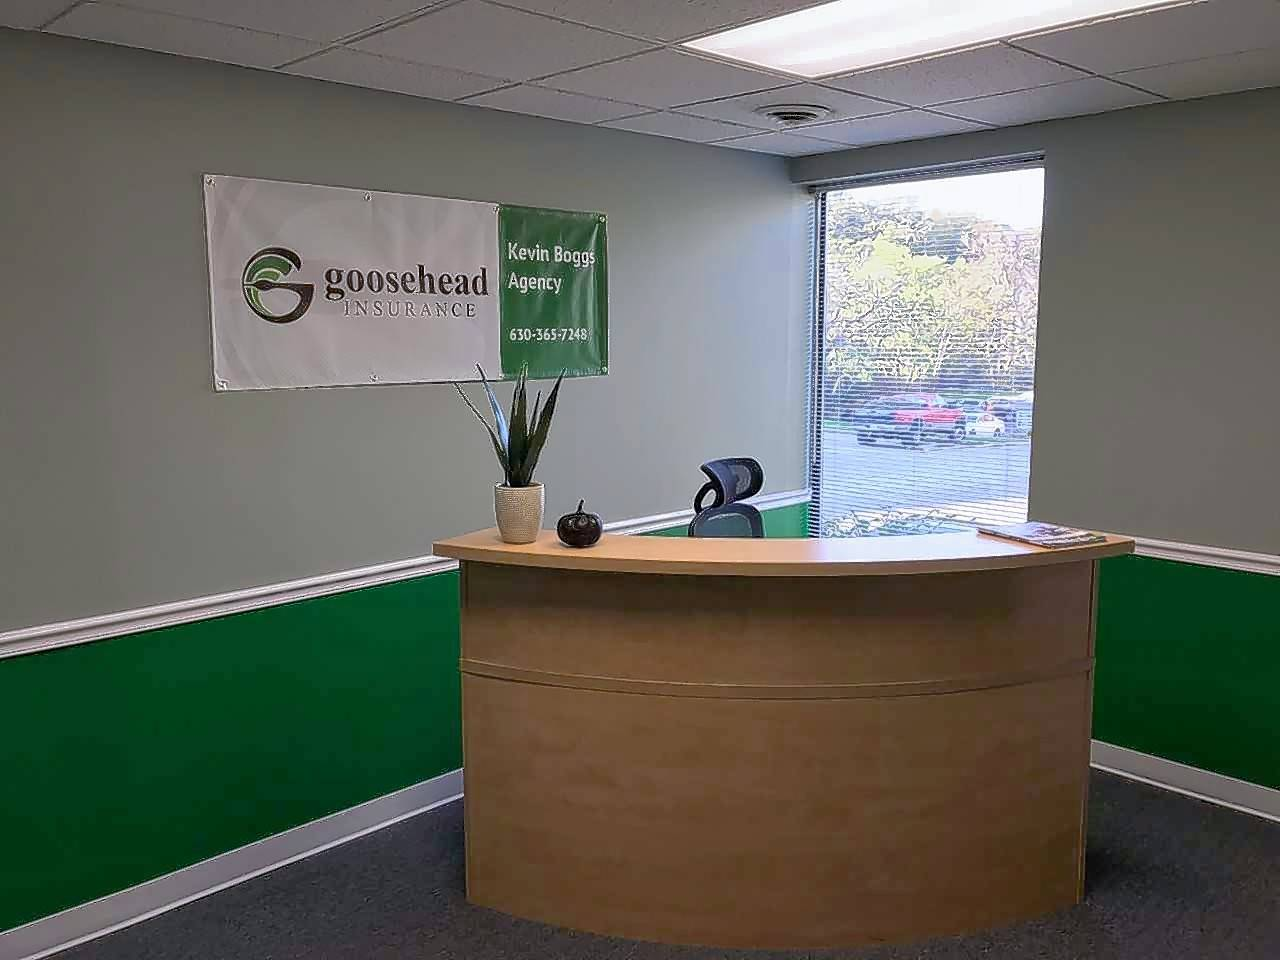 Goosehead Insurance, The Kevin Boggs Agency opened earlier this month at 125 E. Lake St., Suite 207, Bloomingdale.